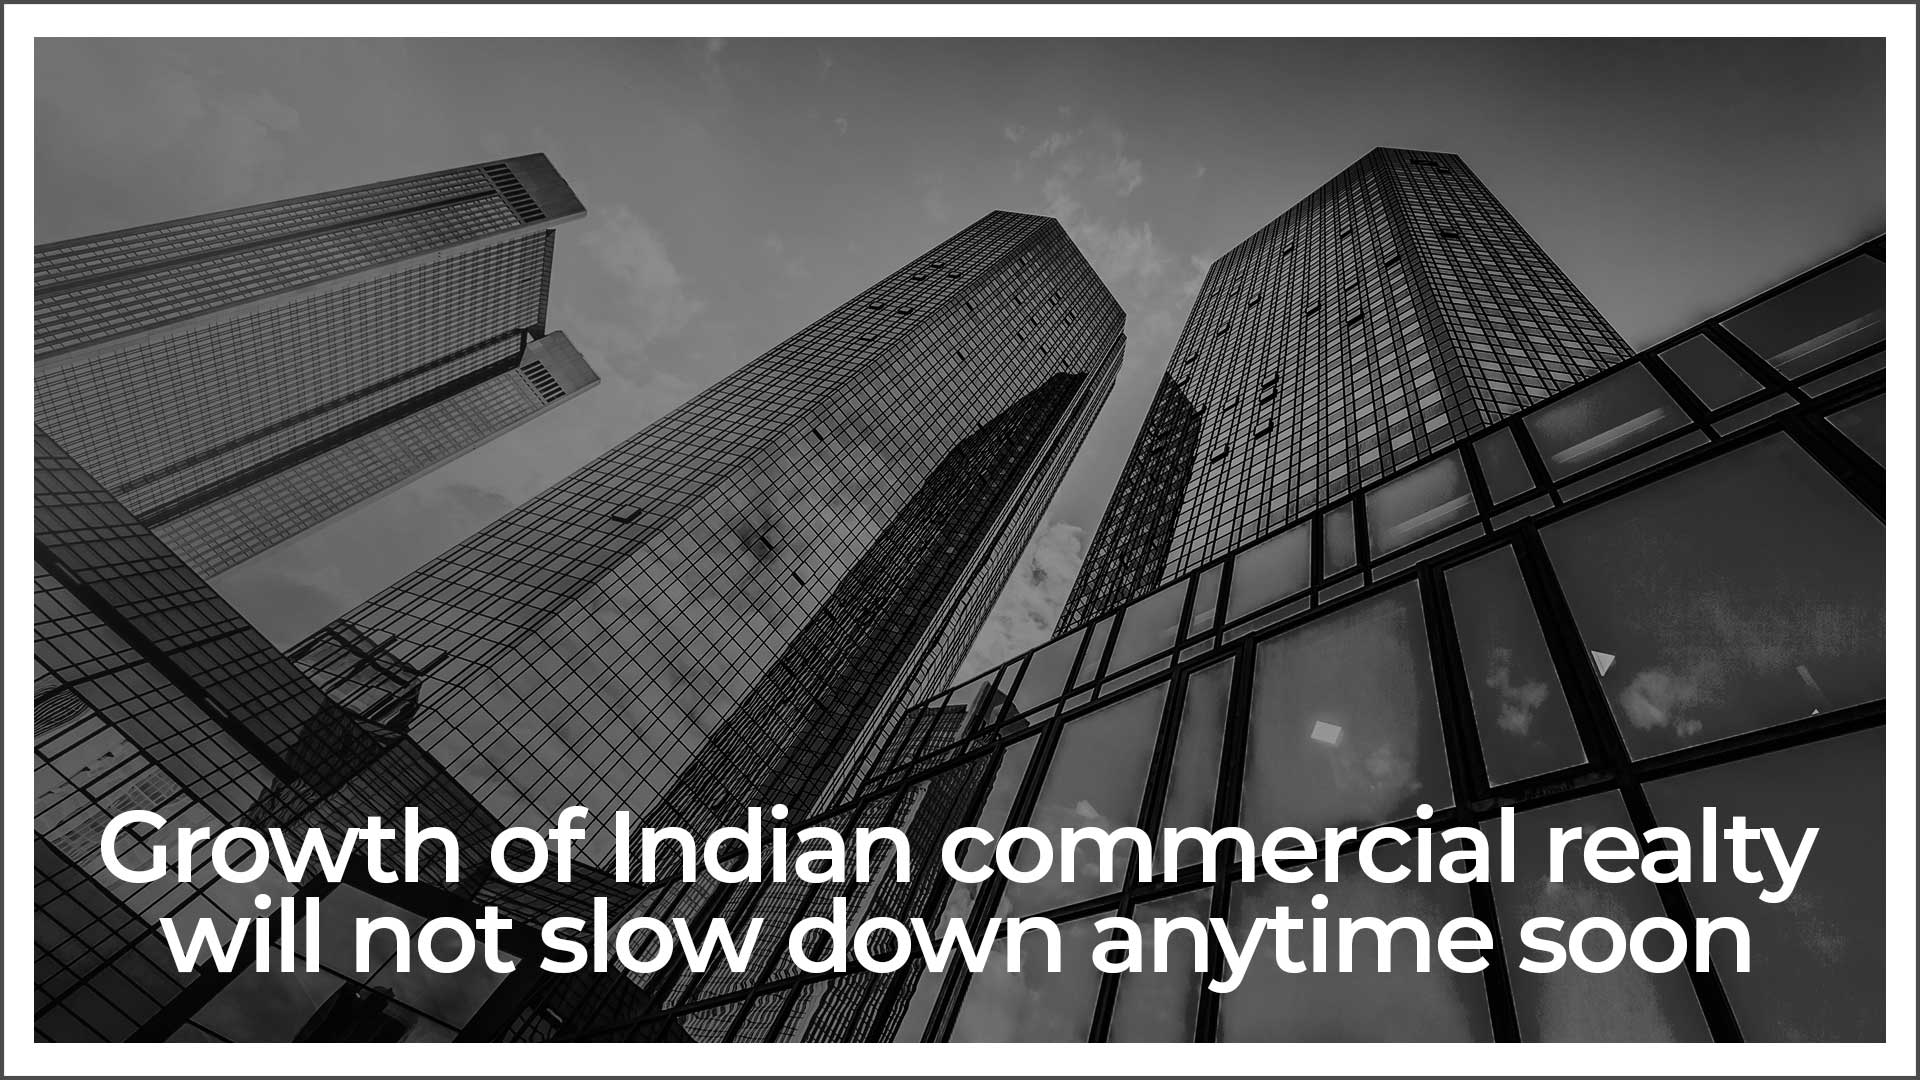 India's Commercial Realty Industry Set To Have Massive Boost